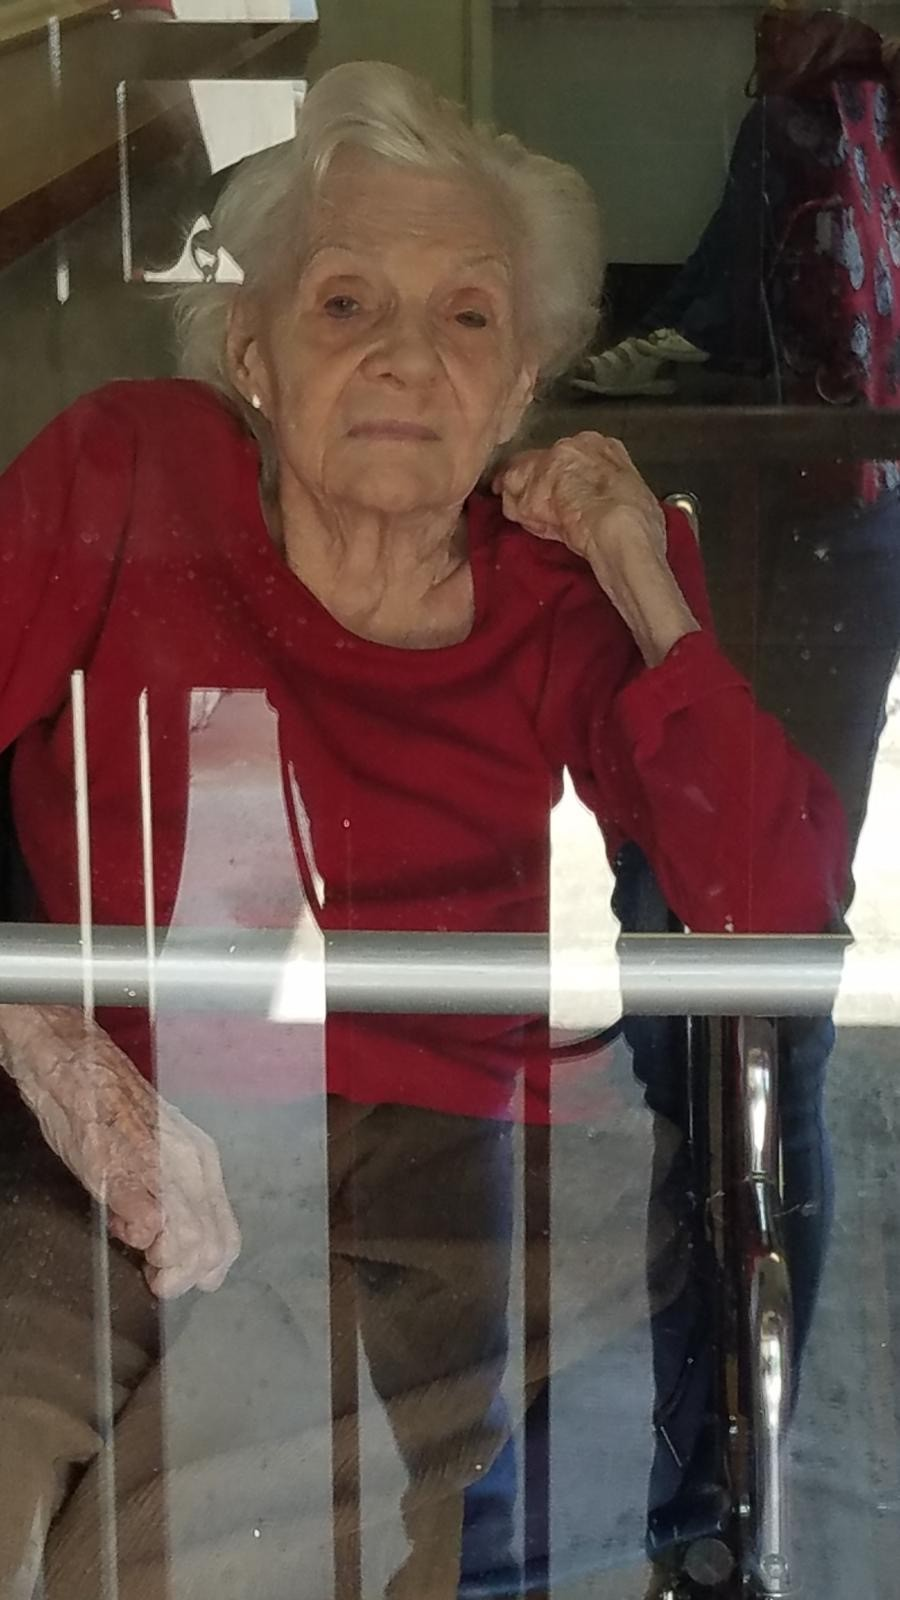 an image of an older woman in a red sweater - seen through a window